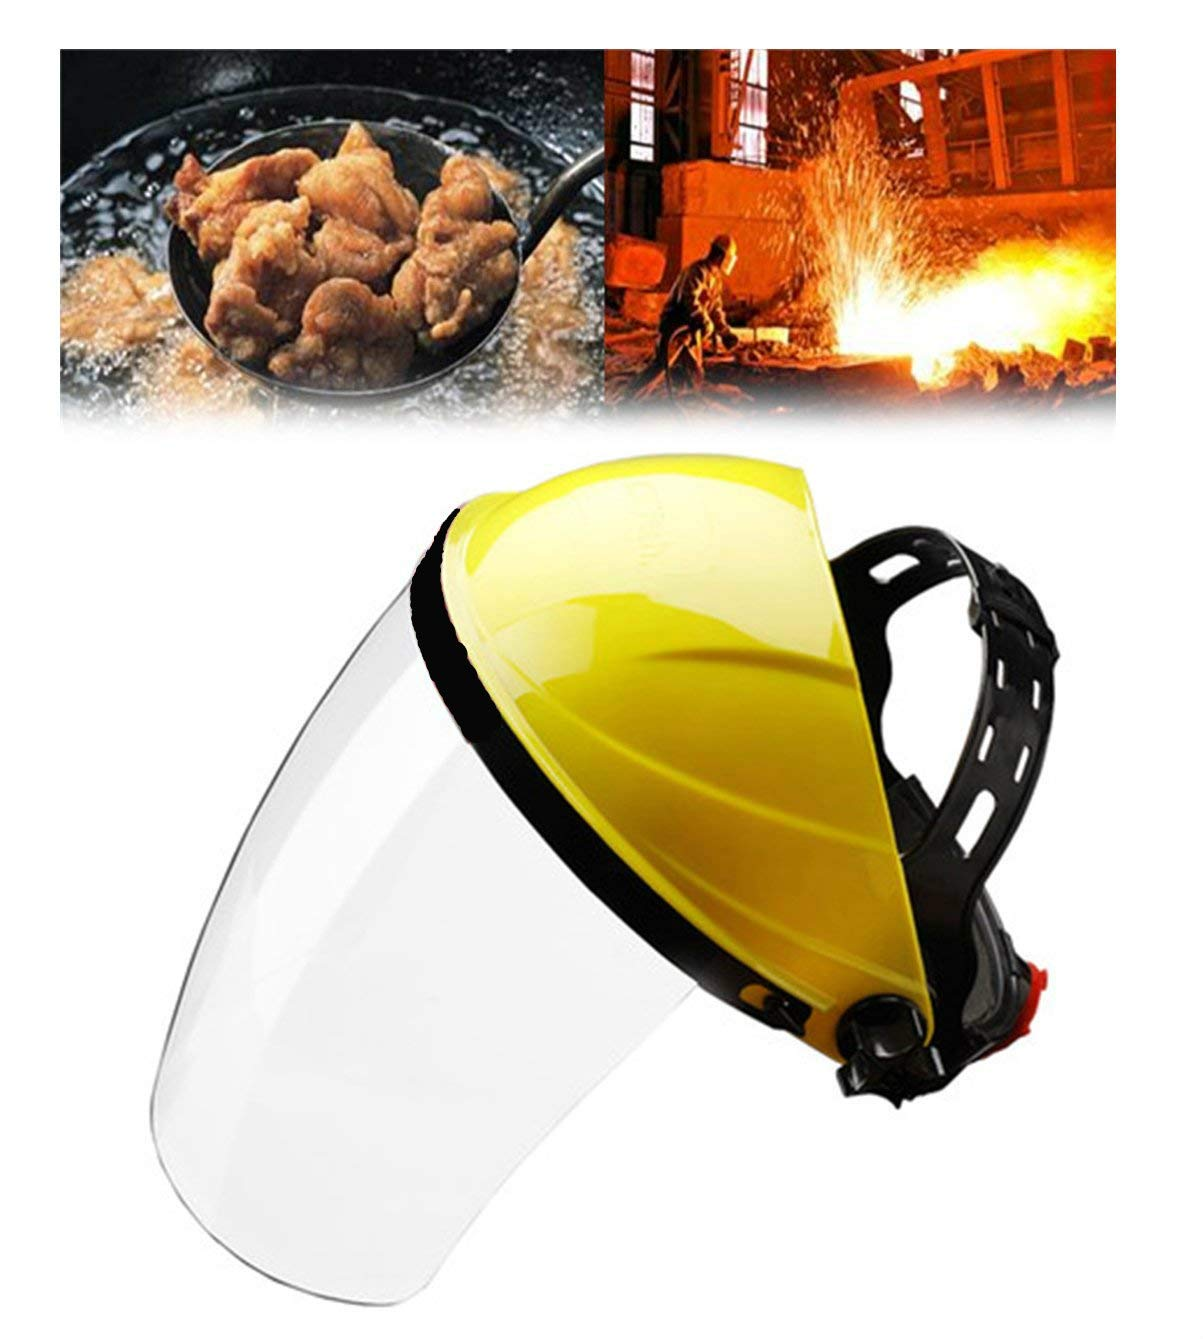 FIVE BEE Adjustable Clear Full Face Shield Visor Mask |Face and Head Coverage| Anti-smoke Masks Cooking Protective Tool | Ideal for Automotive, Construction, General Manufacturing, Mining, Oil/Gas Use